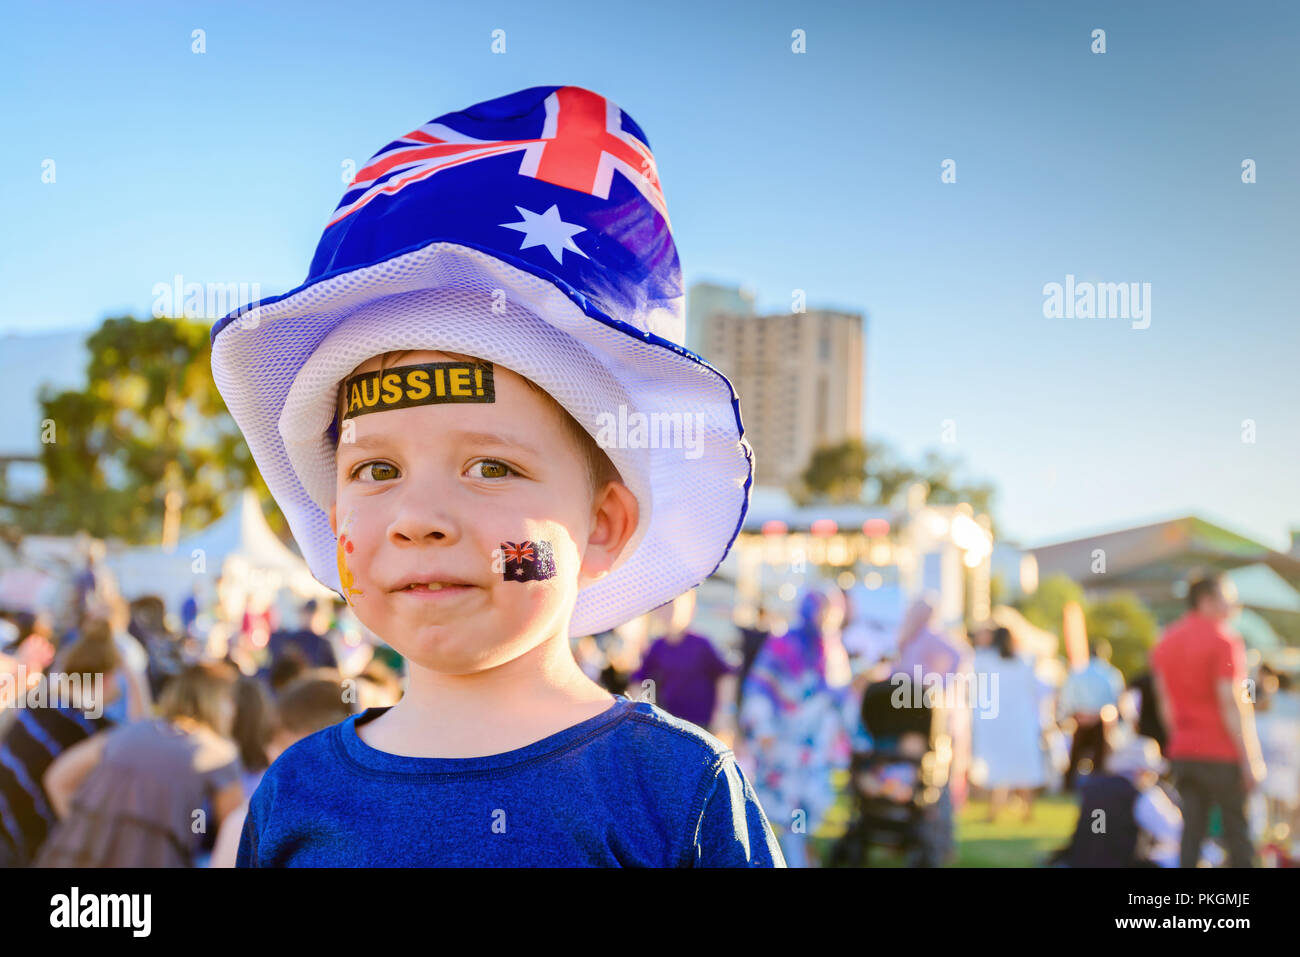 Cute Australian boy with Aussie tattoos on his face on Australia Day celebration in Adelaide - Stock Image